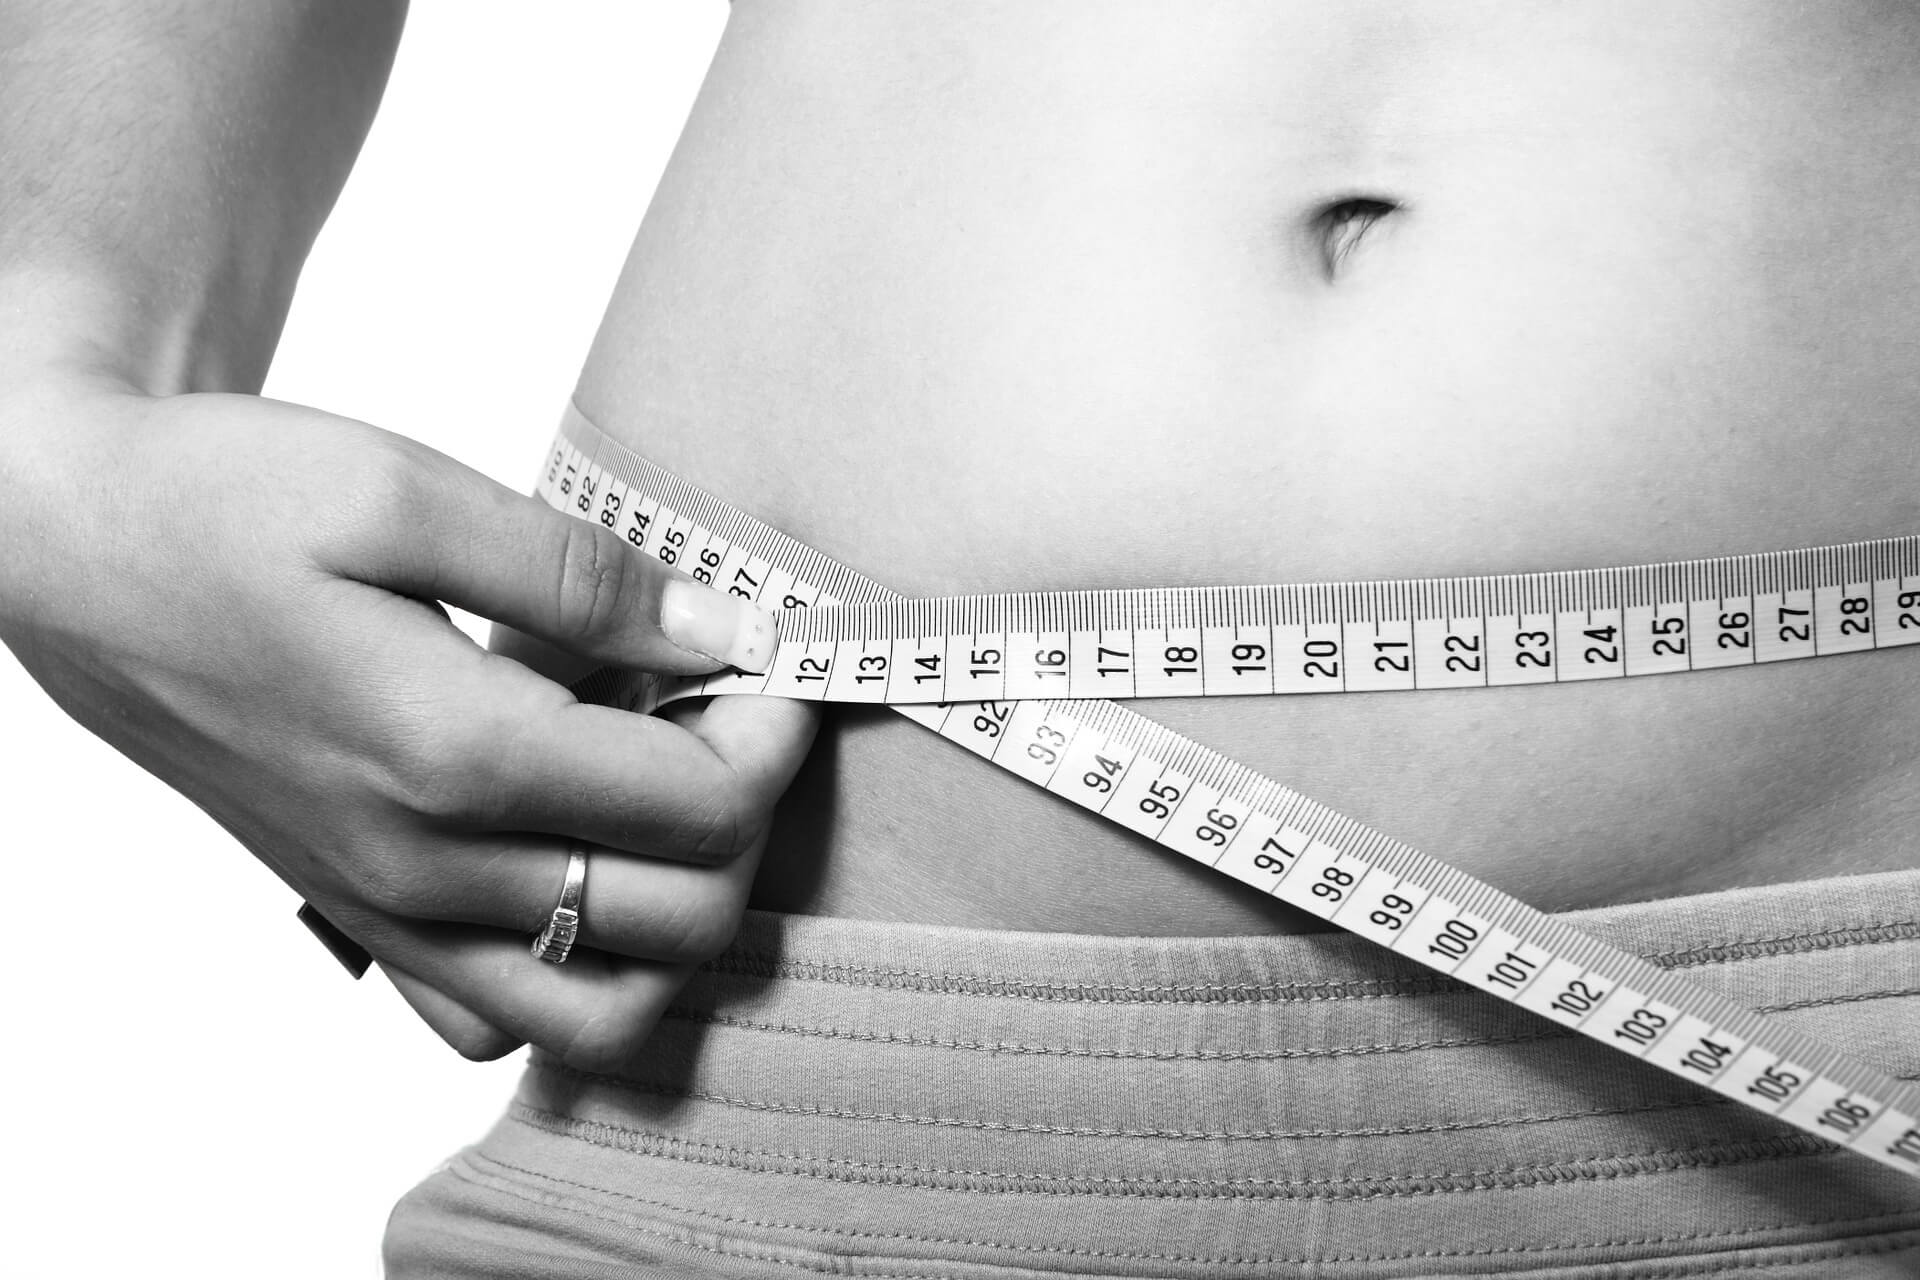 a woman measuring her stomach circumference